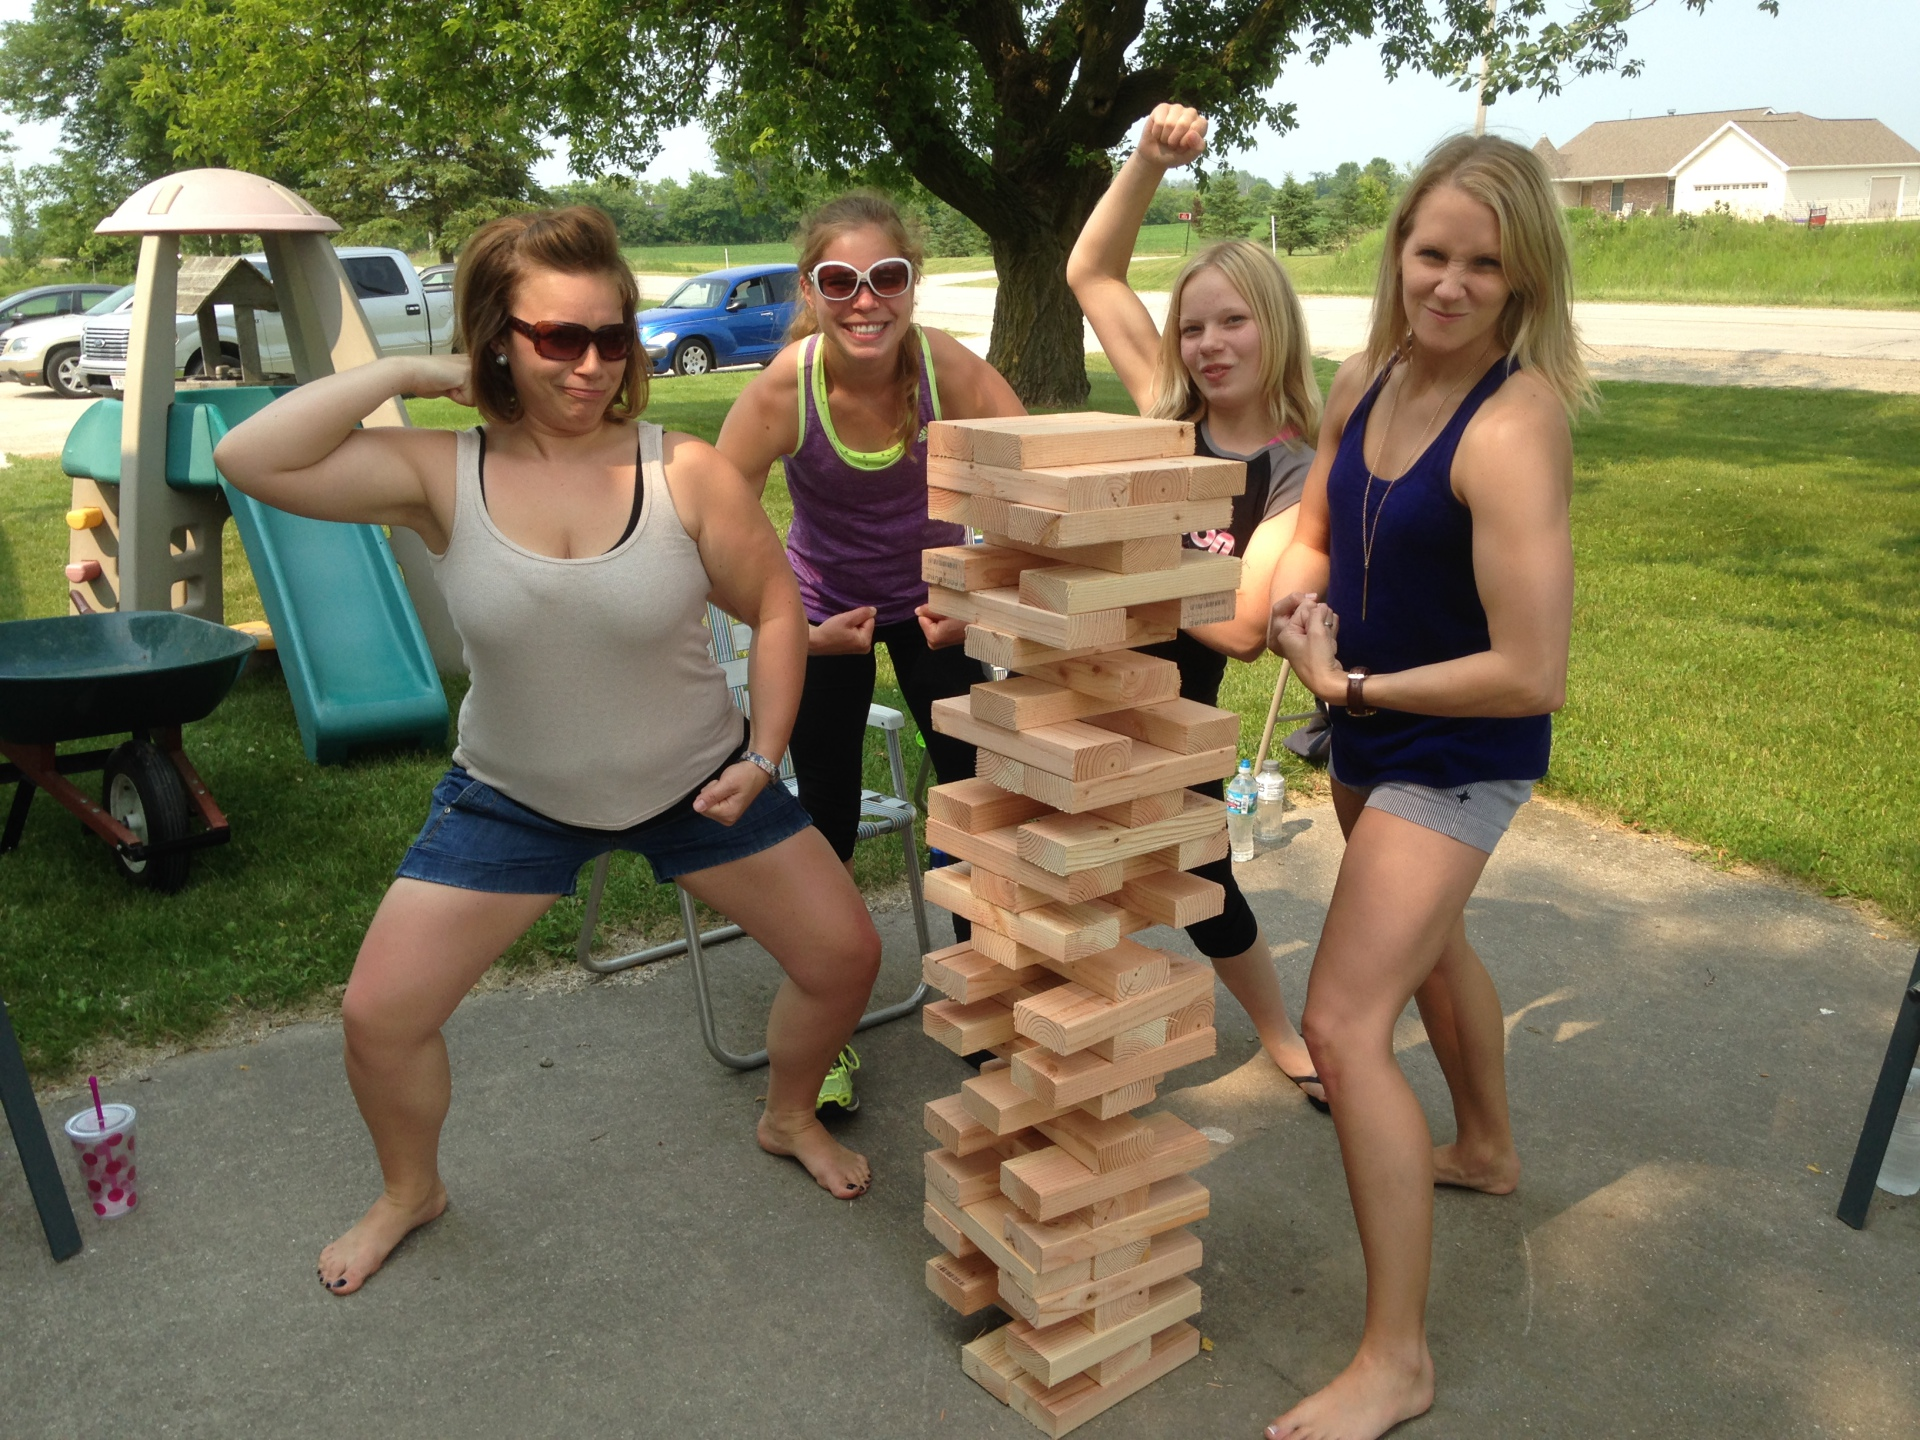 Giant Jenga in Action